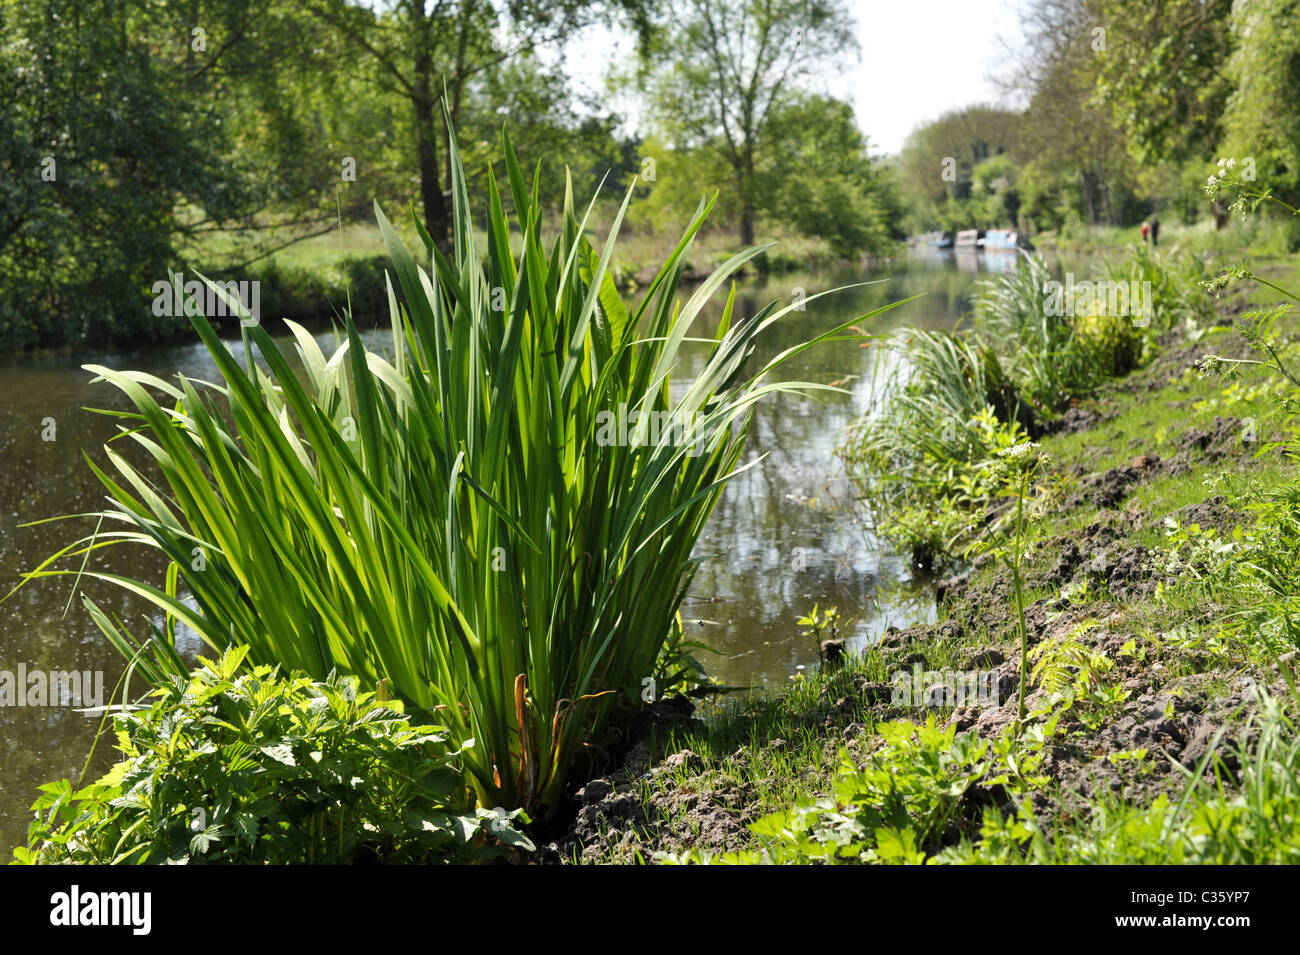 View of a tranquil canal from the towpath with lush green plants in the foreground on a bright summer day - Stock Image